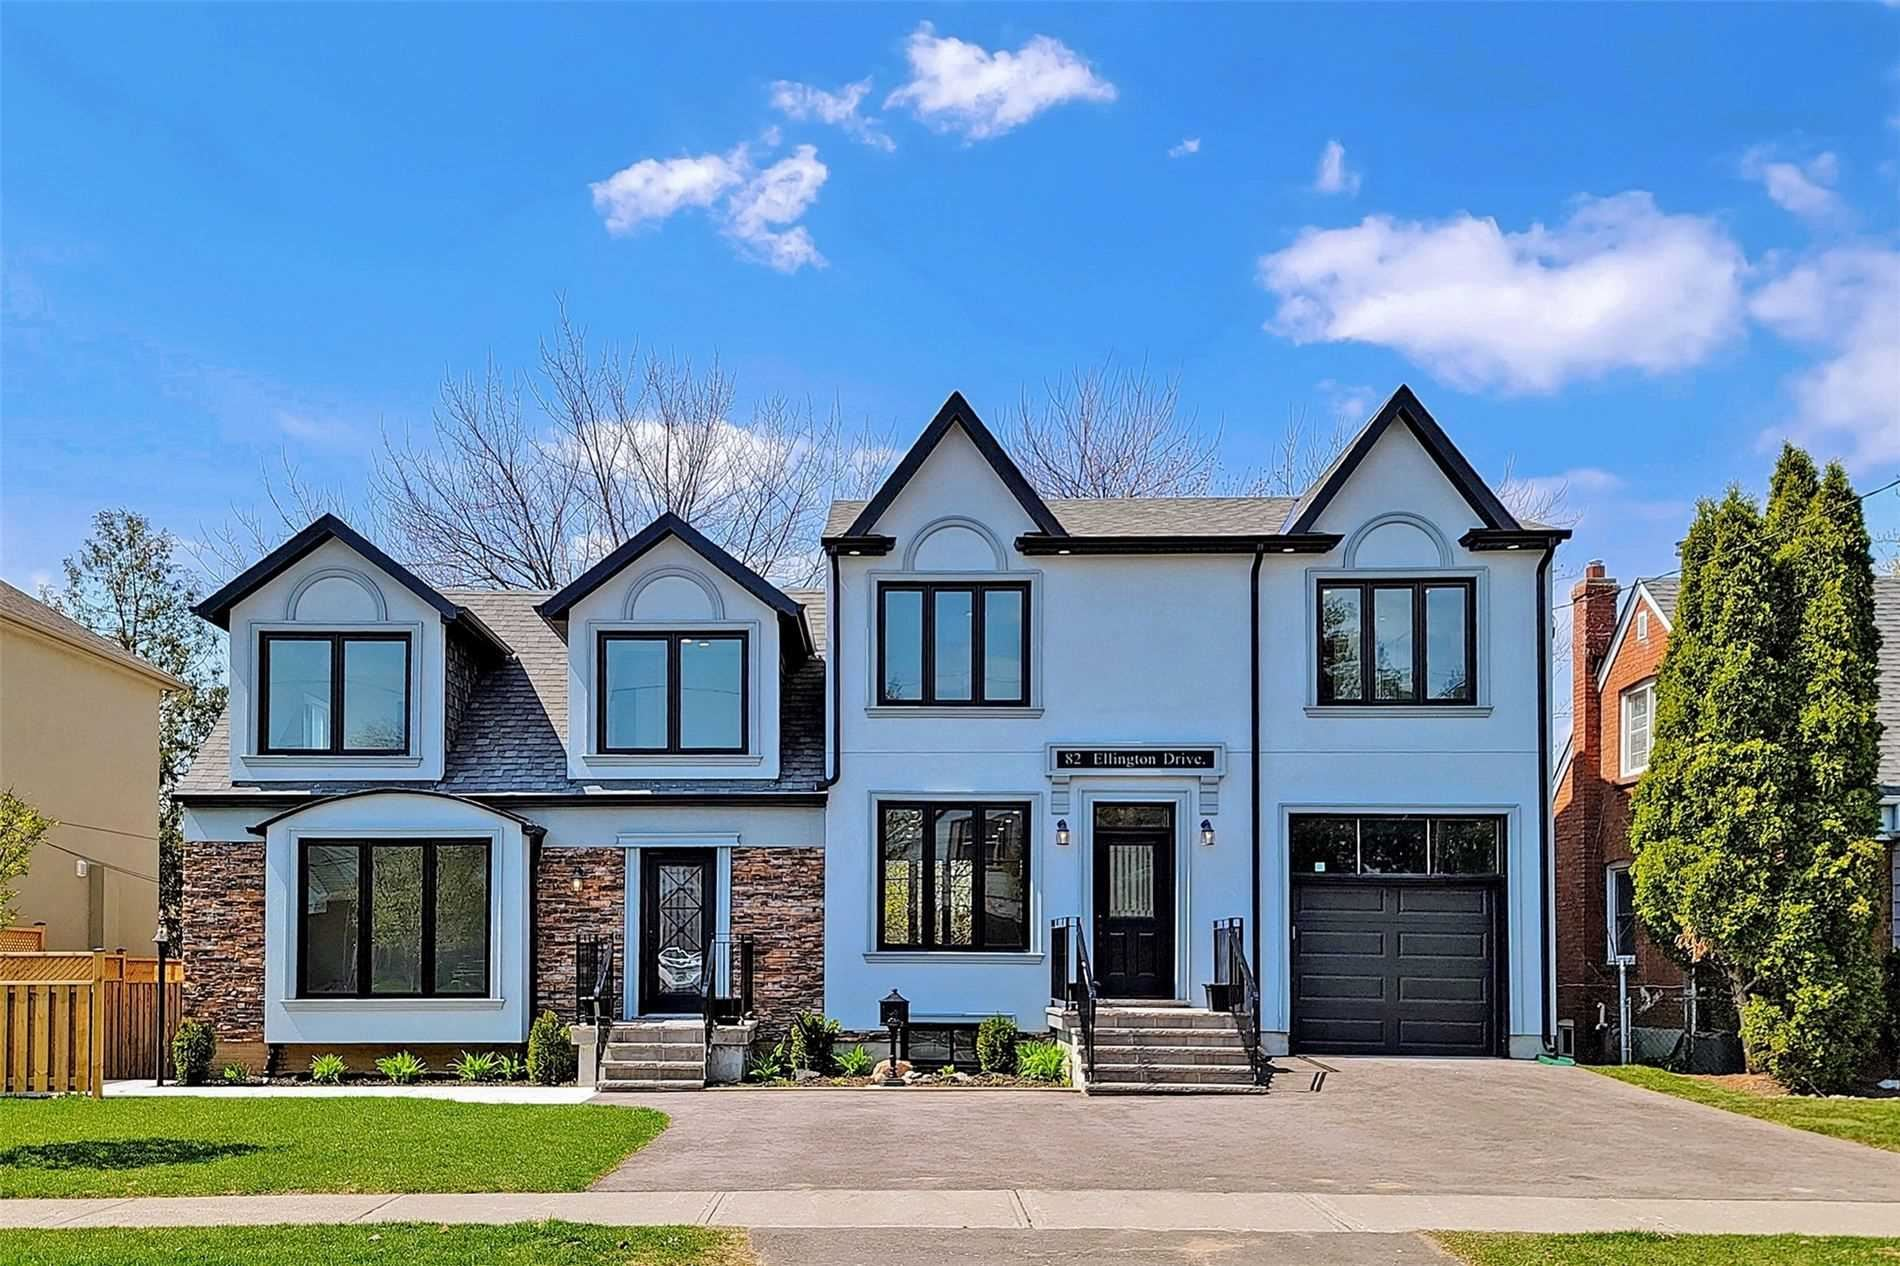 82 Ellington Dr, Toronto, ON M1R3Y1 - MLS#: E5209912